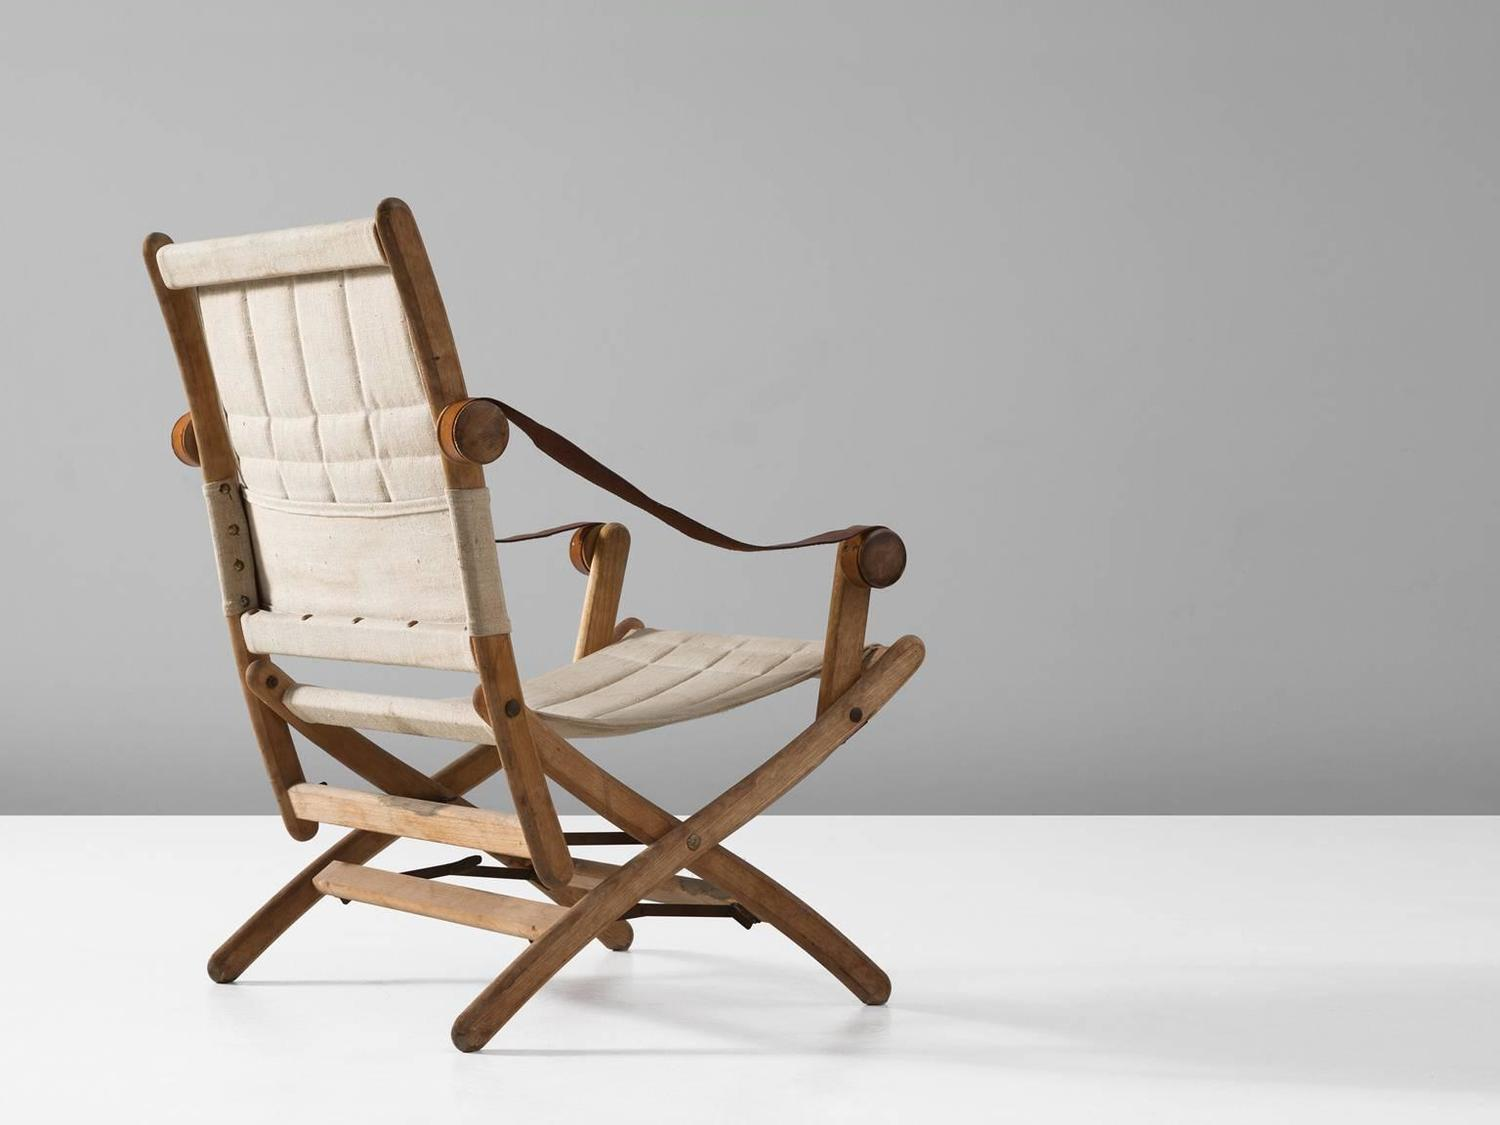 Scandinavian Safari Folding Chair in Beech and Canvas Upholstery For Sale at